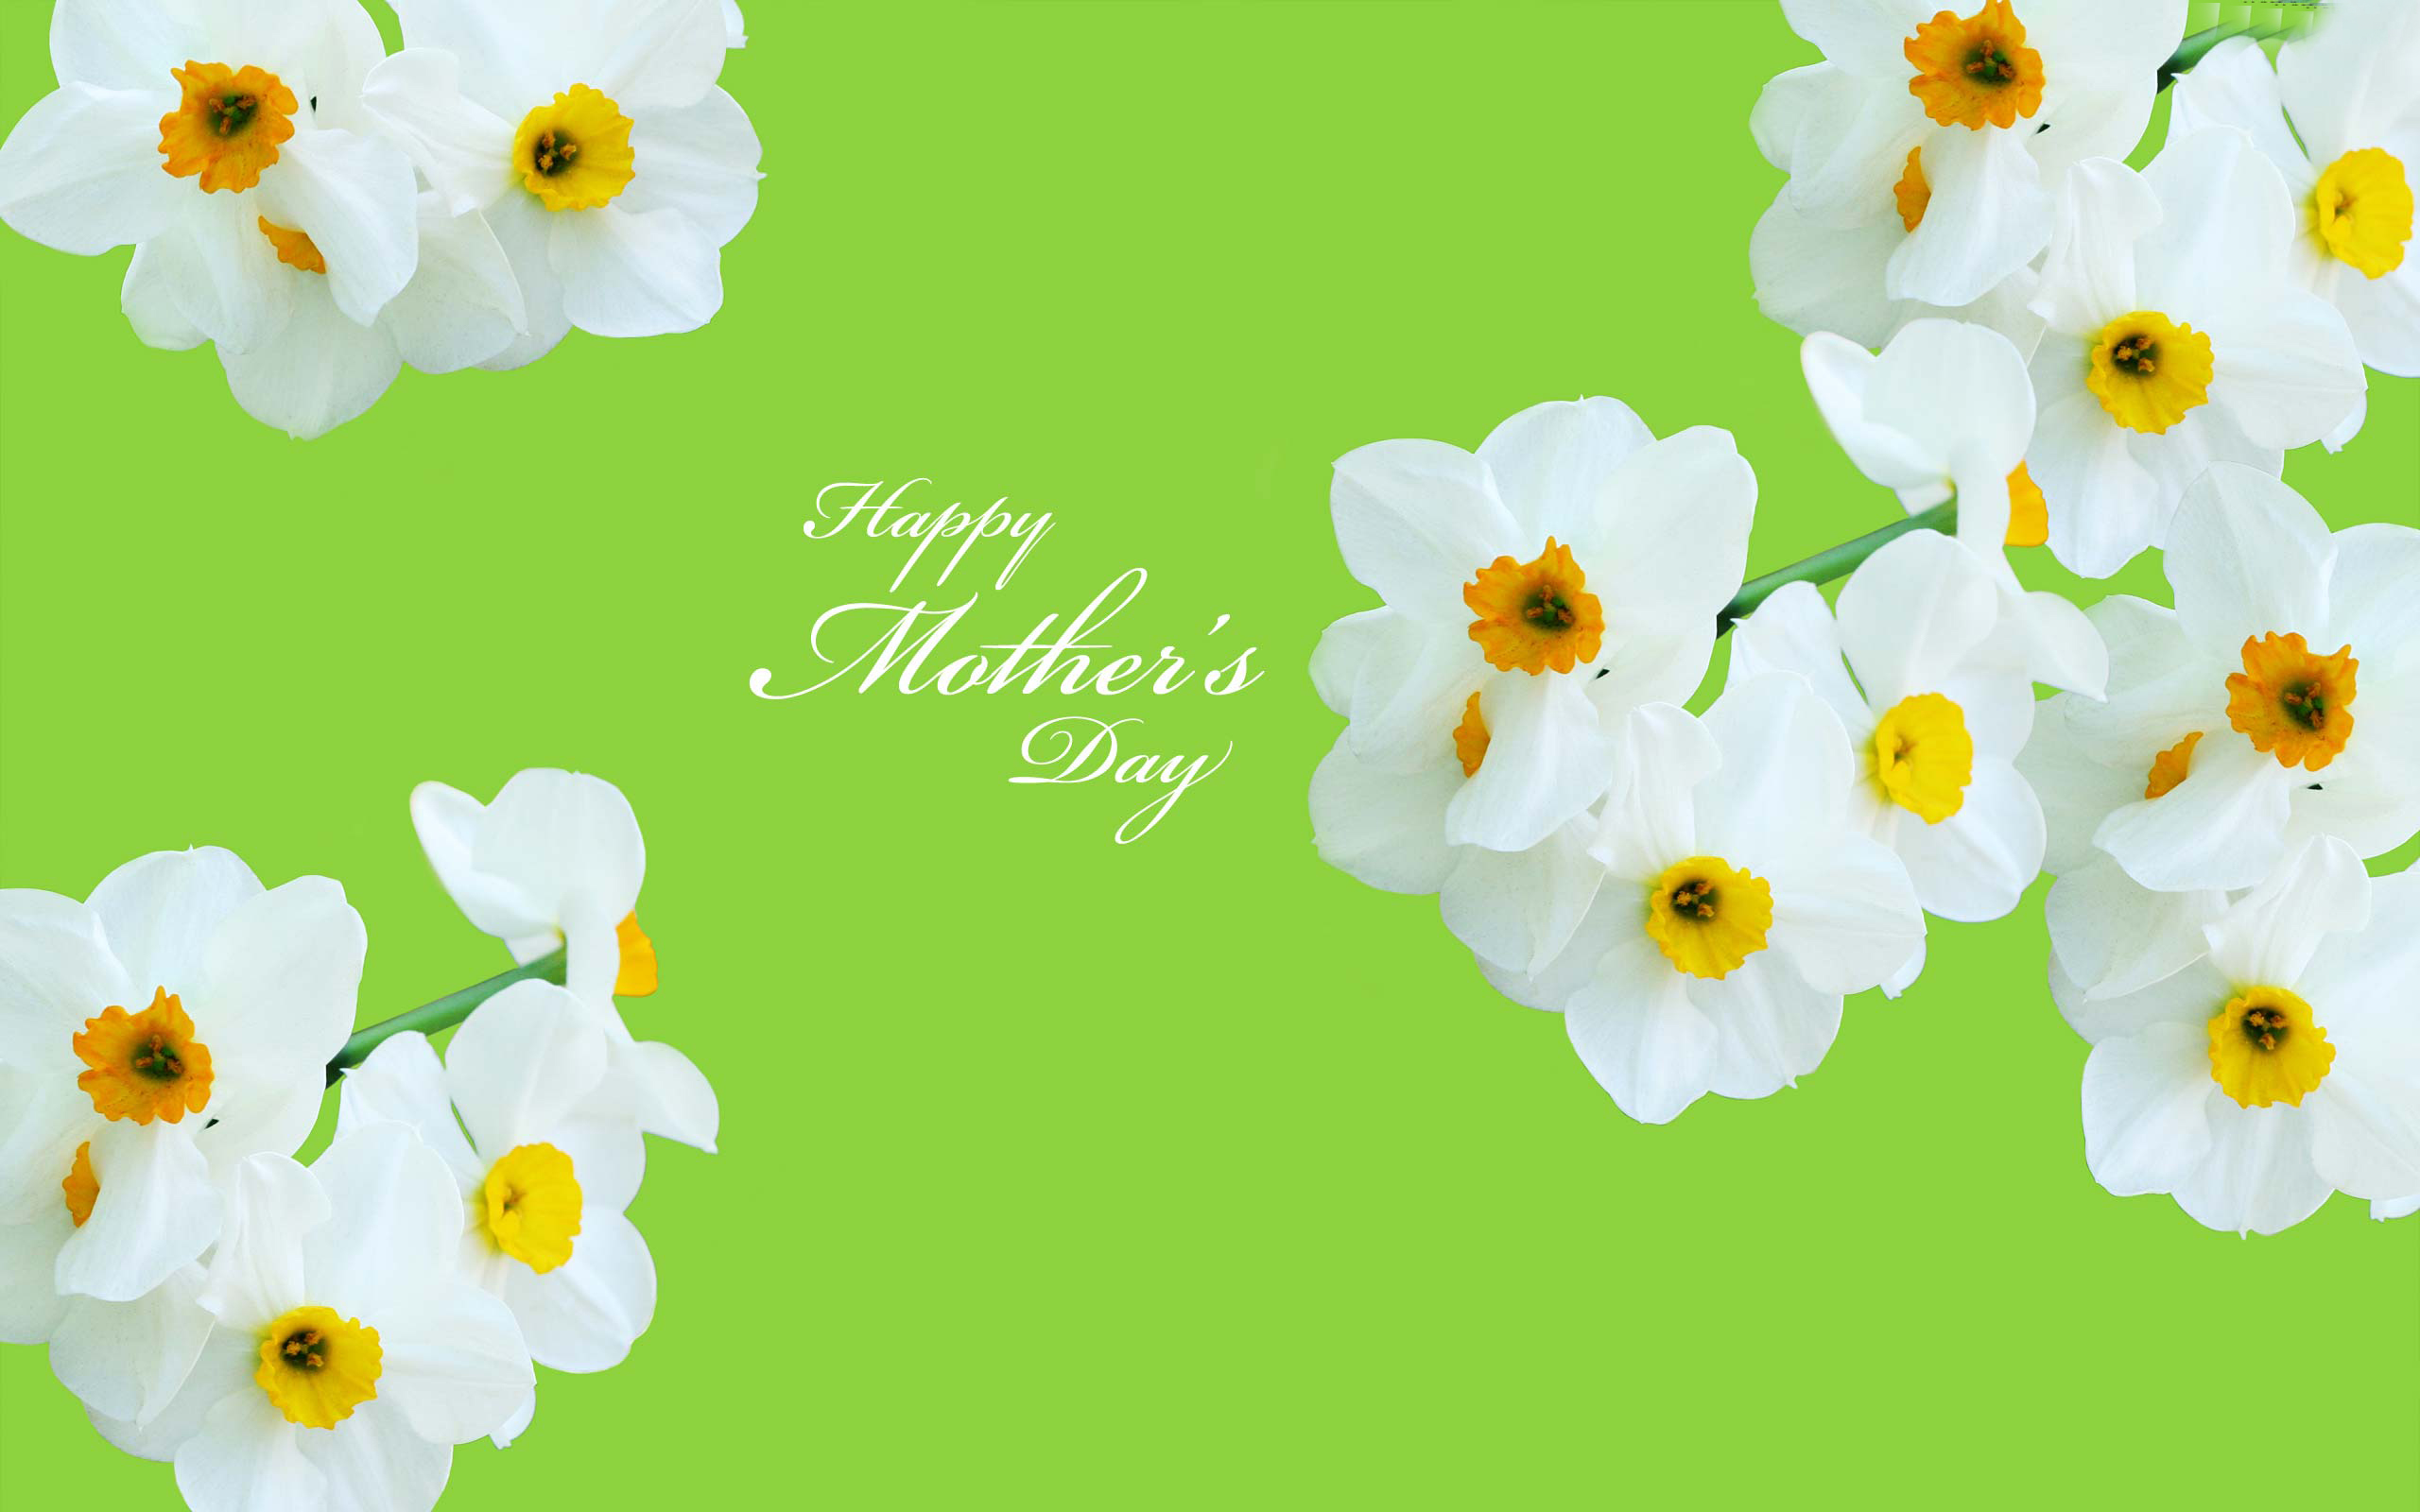 Happy Mothers Day 2014   Wallpaper High Definition High Quality 2560x1600